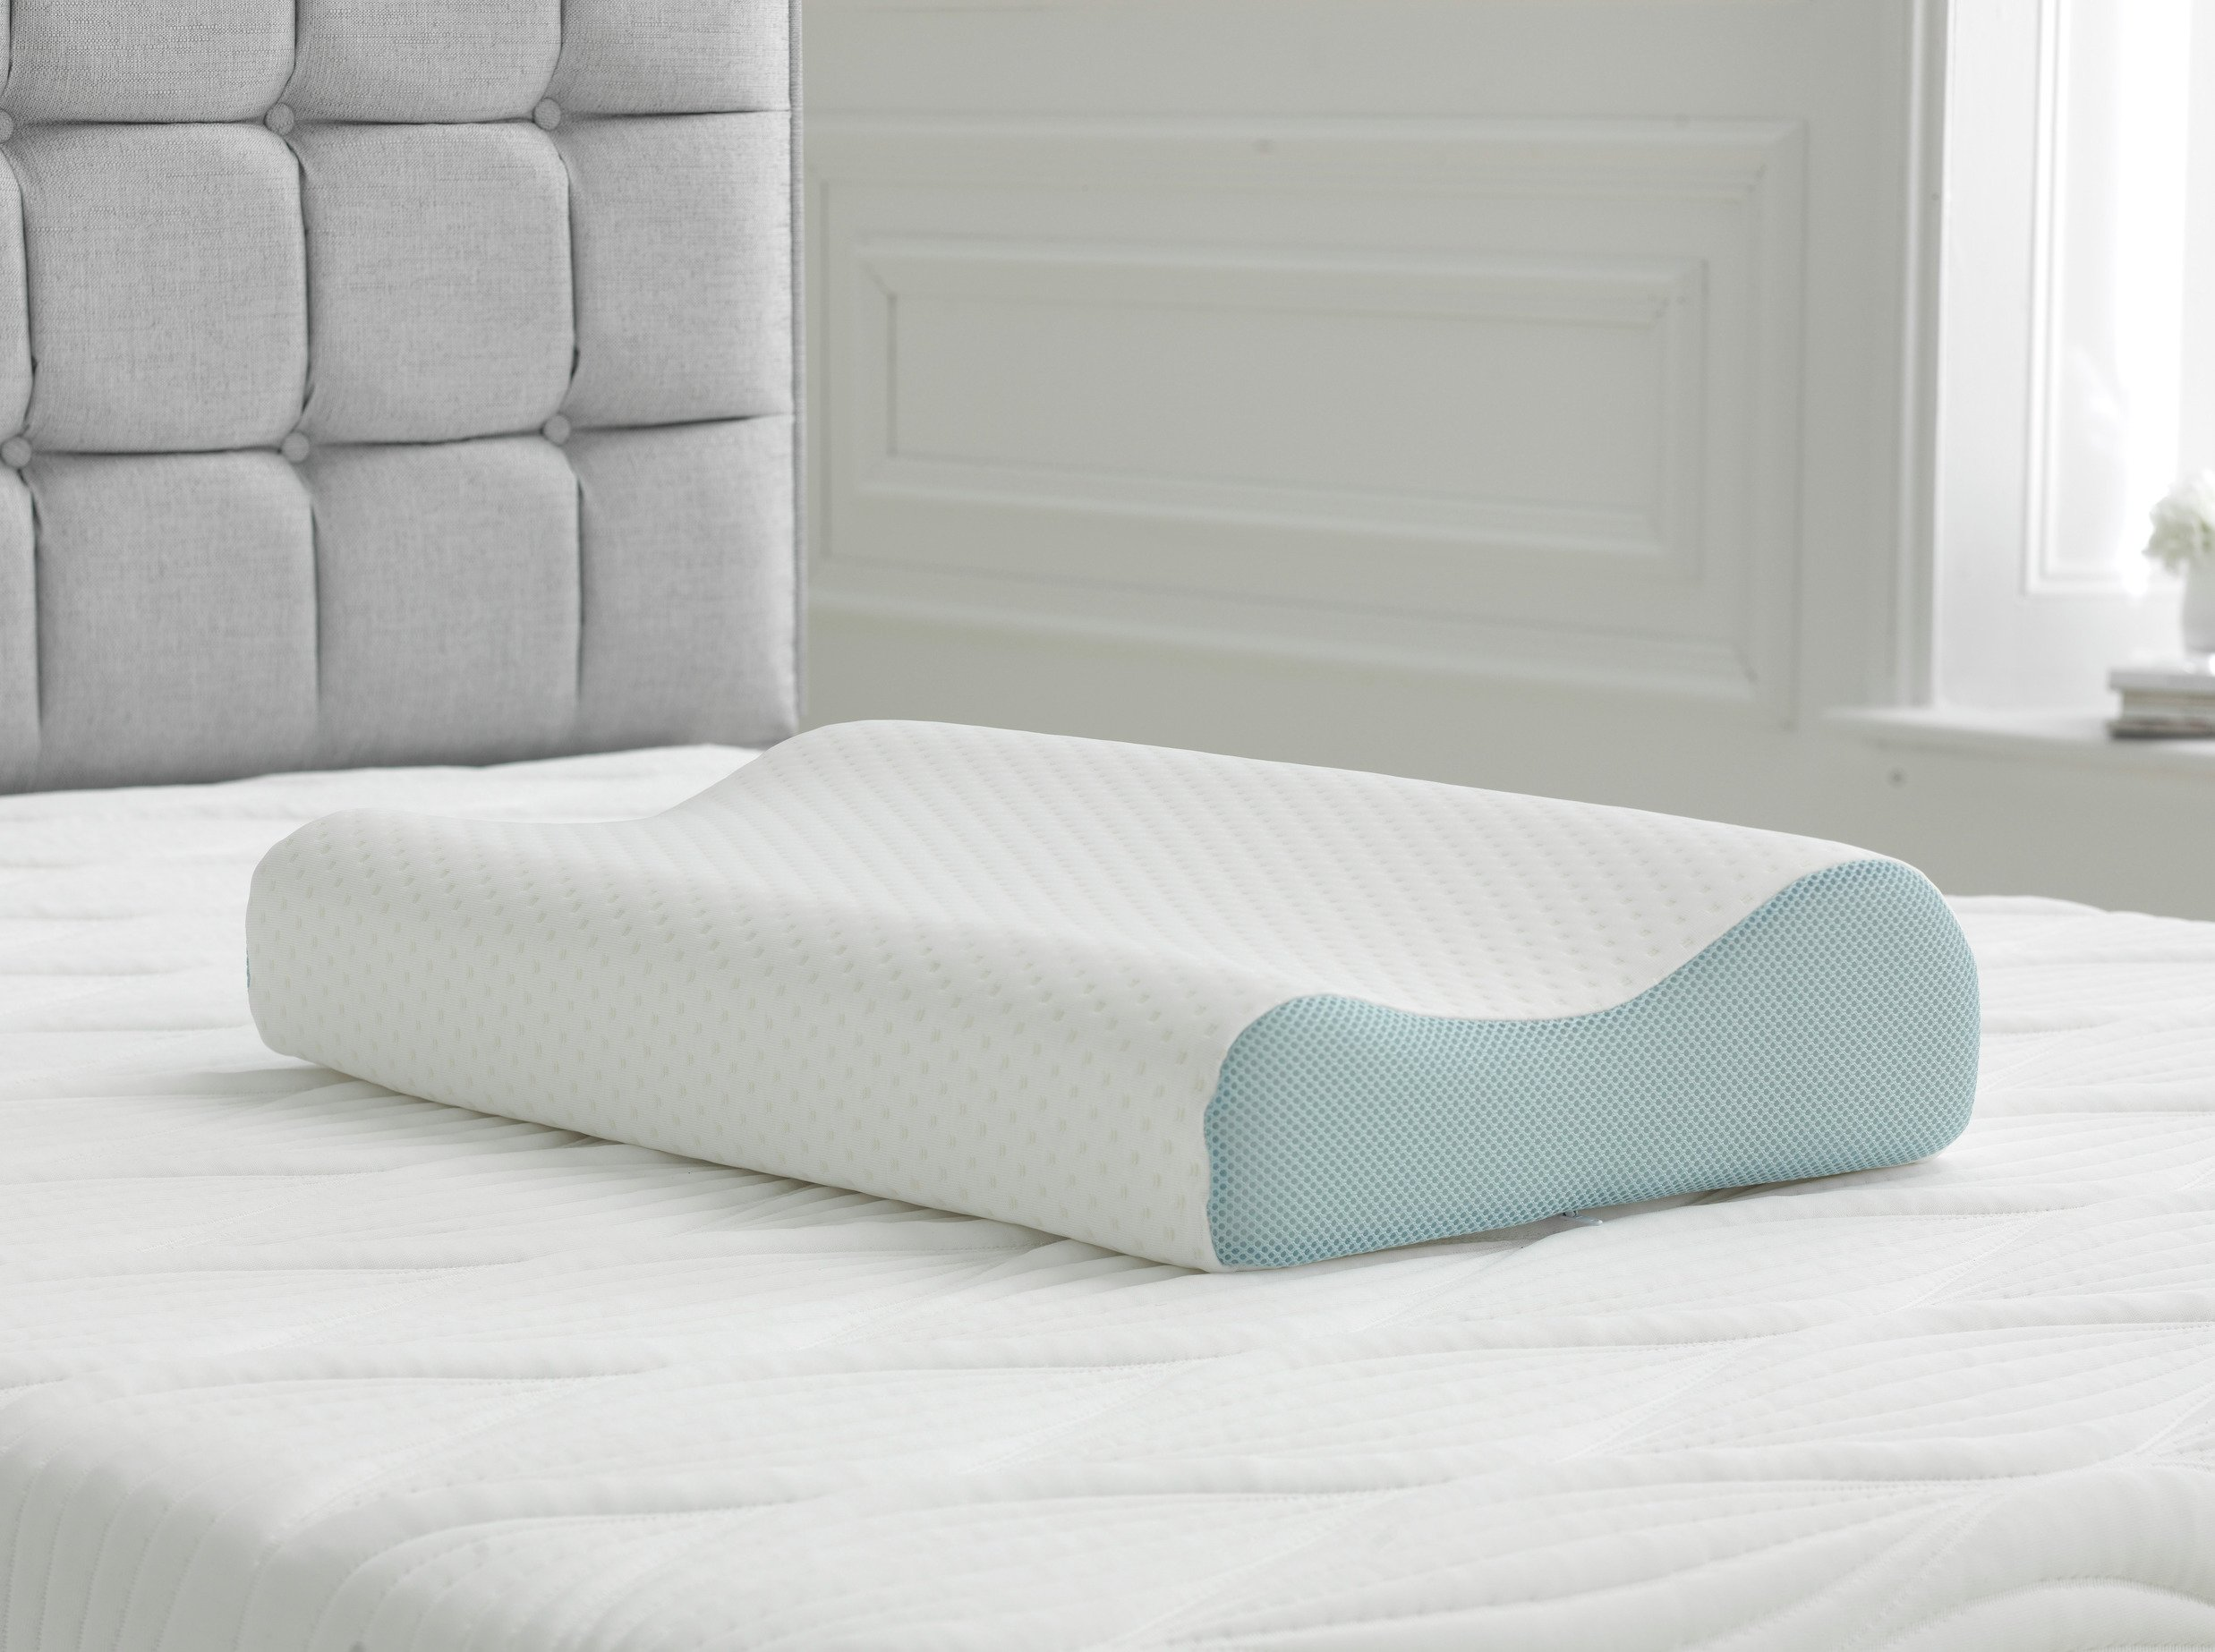 Review Of Dormeo Fresh Anatomic Pillow